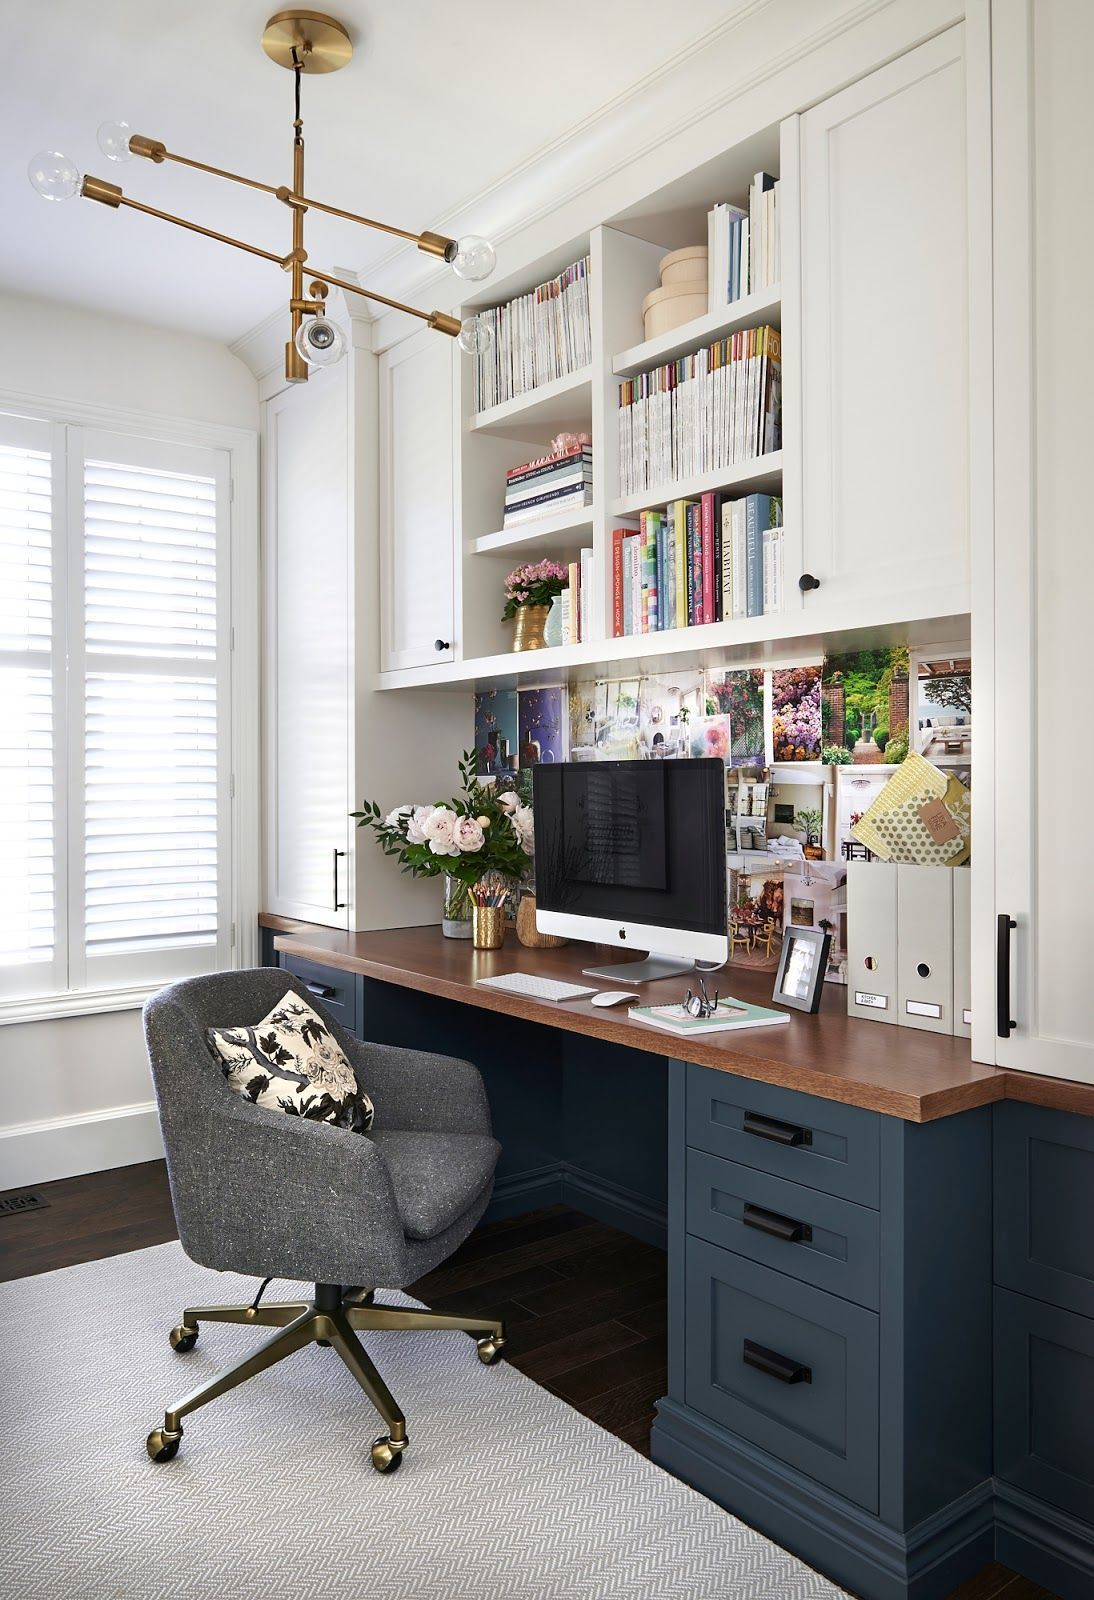 20 Inspirational Home Office Decor Ideas For 2019: Whether You Have A Dedicated Home Office Room Or You're Hoping To